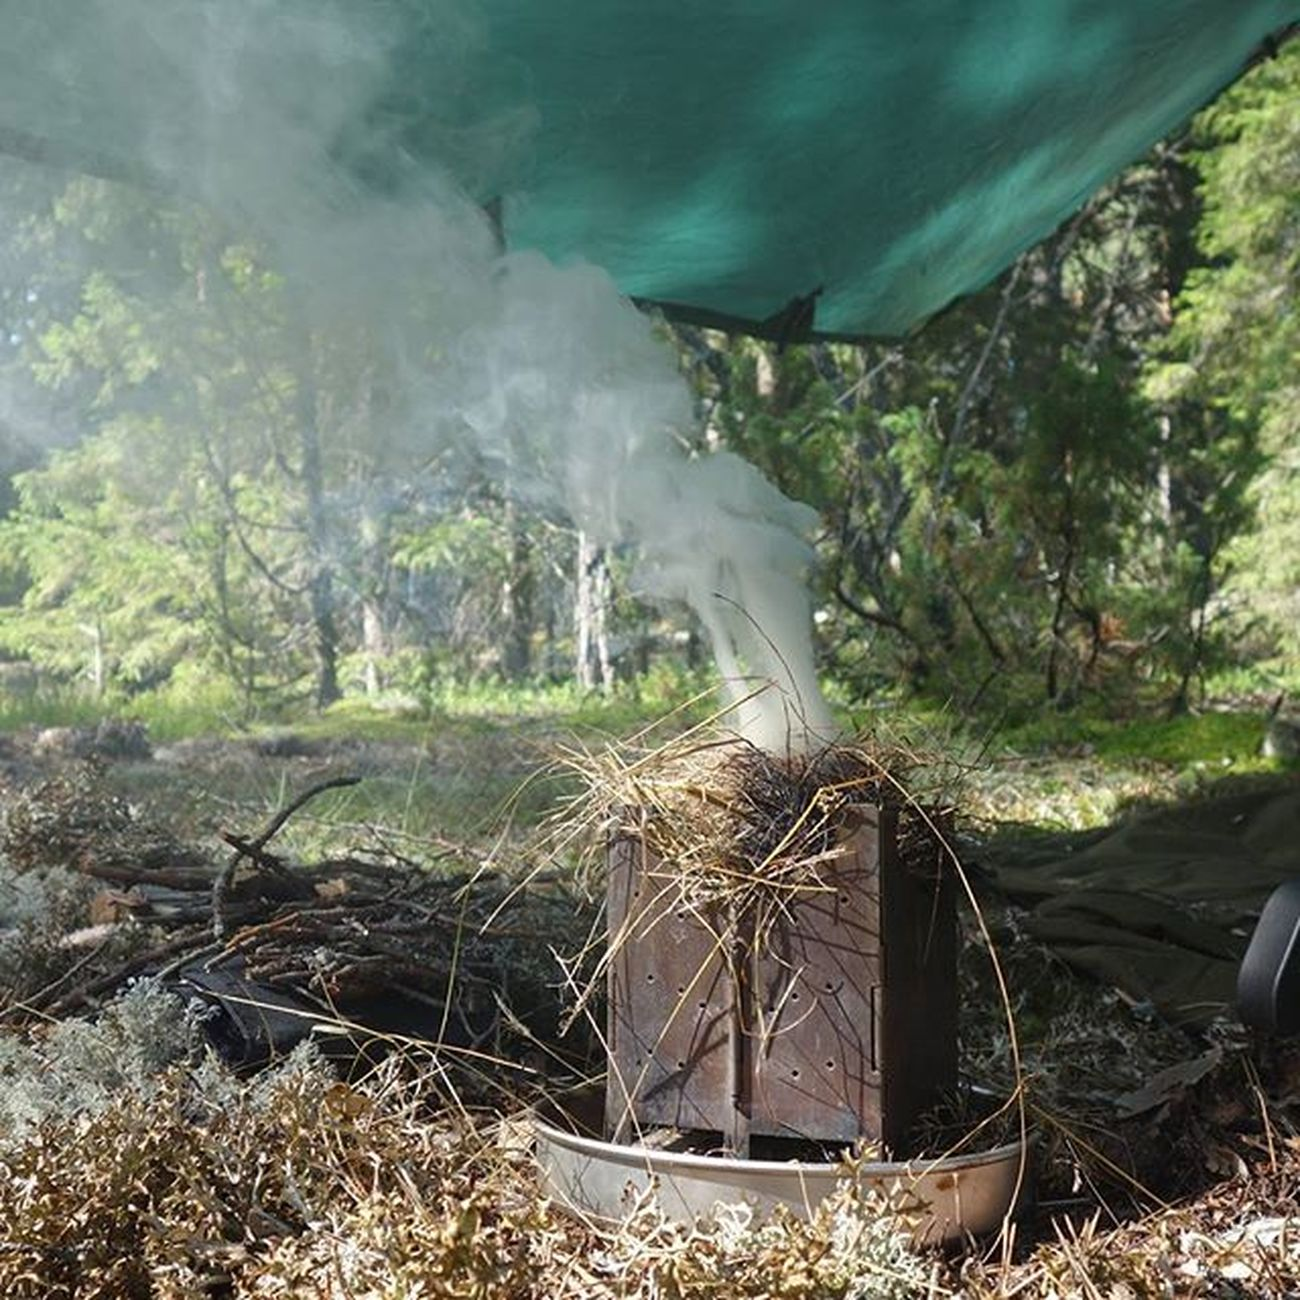 Kuntzi works as a good insect repellent as well.. Bushcooker Kuntzi Bushcraft DDhammocks ddtarp